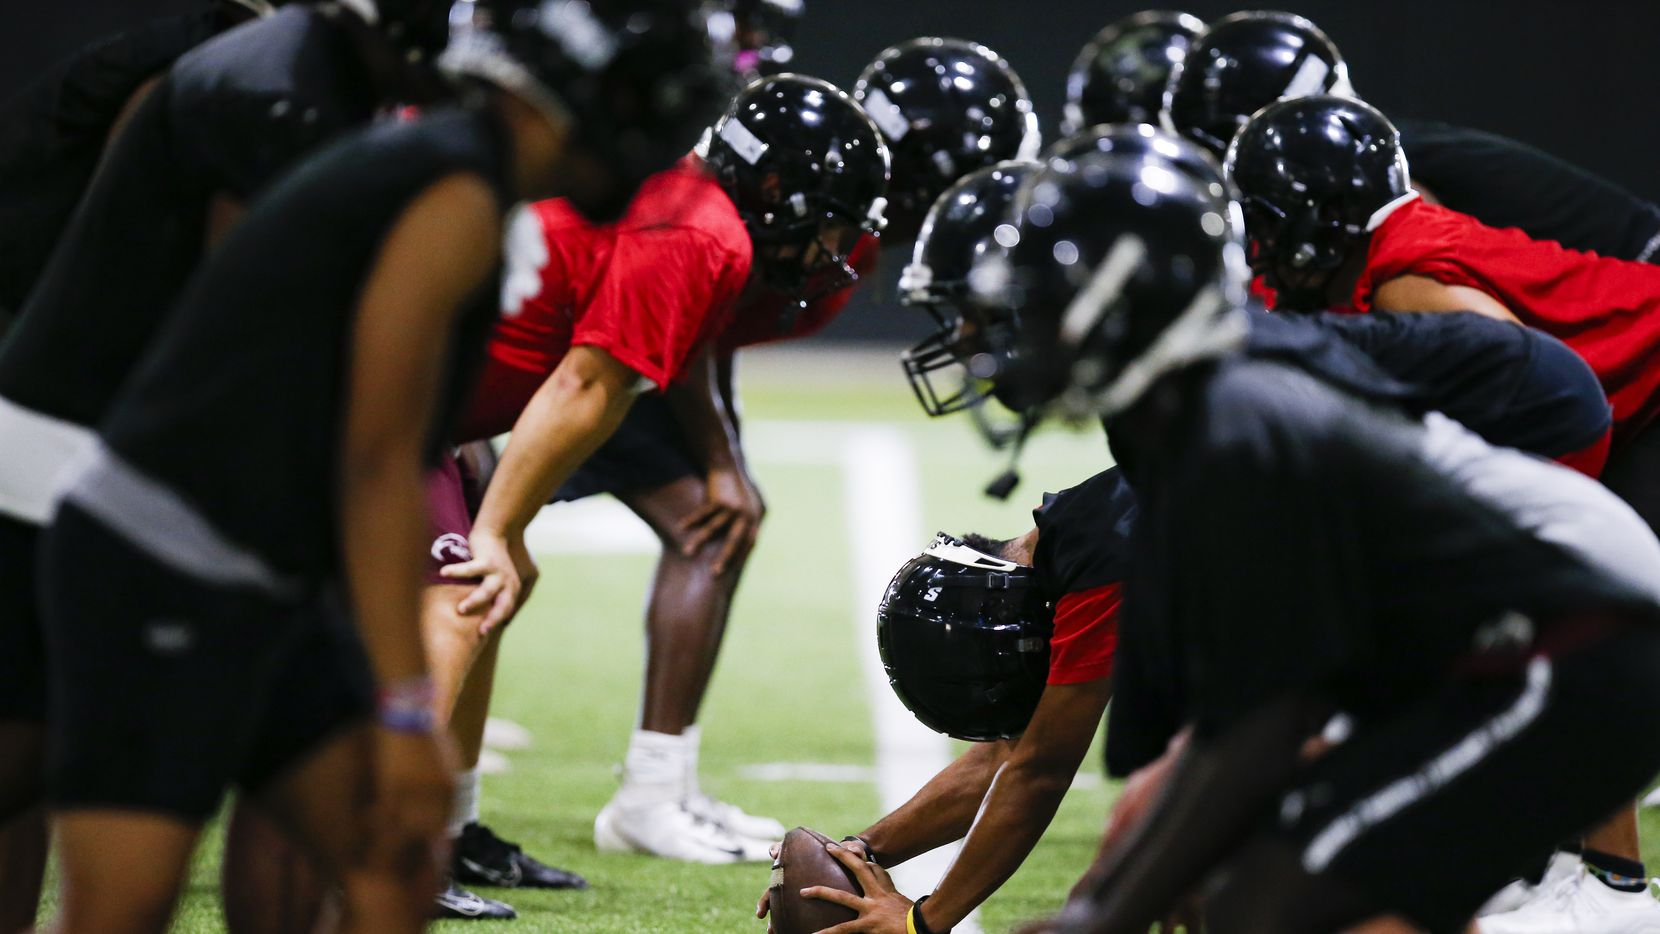 Euless Trinity's varsity football team runs drills during a practice at Euless Trinity High School, Monday, August 9, 2021. (Brandon Wade/Special Contributor)